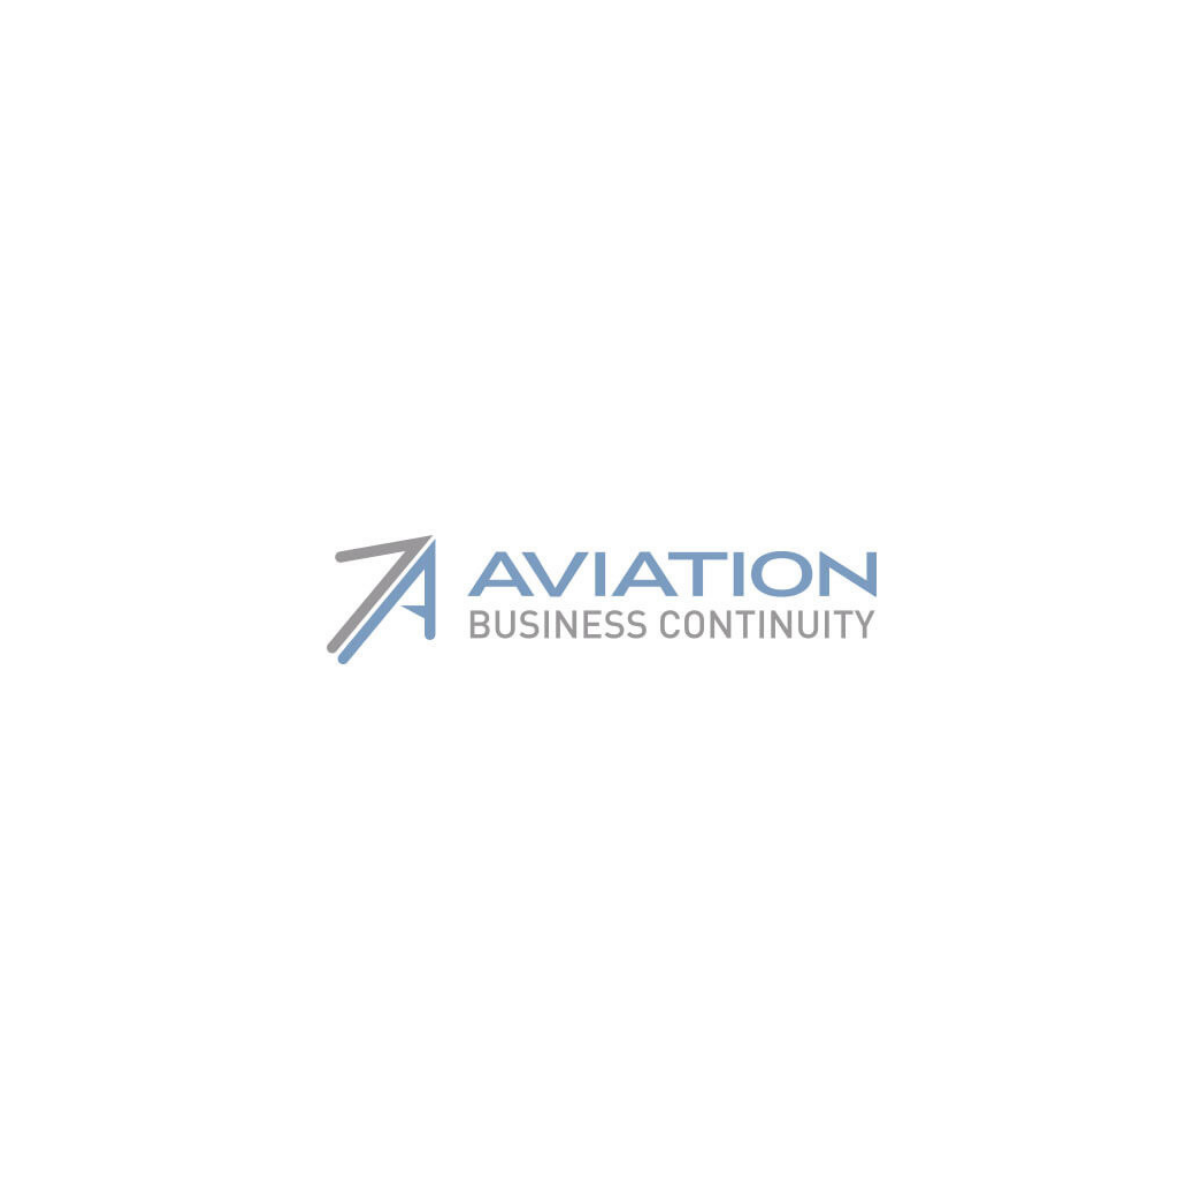 Aviation Business Continuity logo